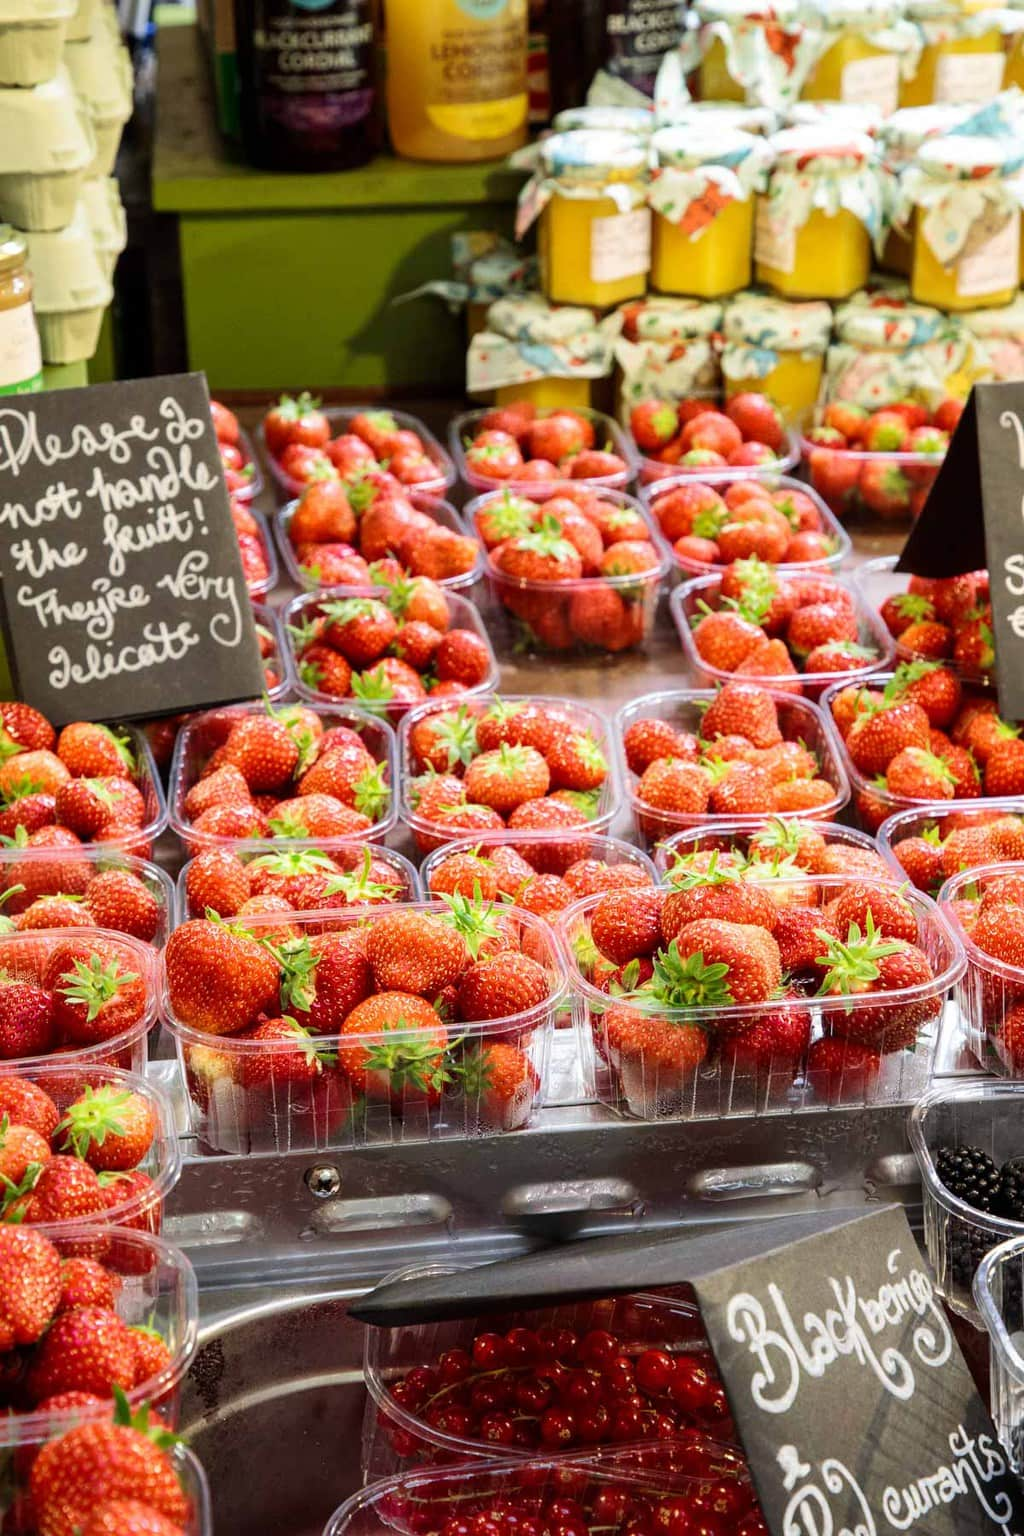 A photo of fresh picked strawberries in baskets for sale at the Cork English Market.